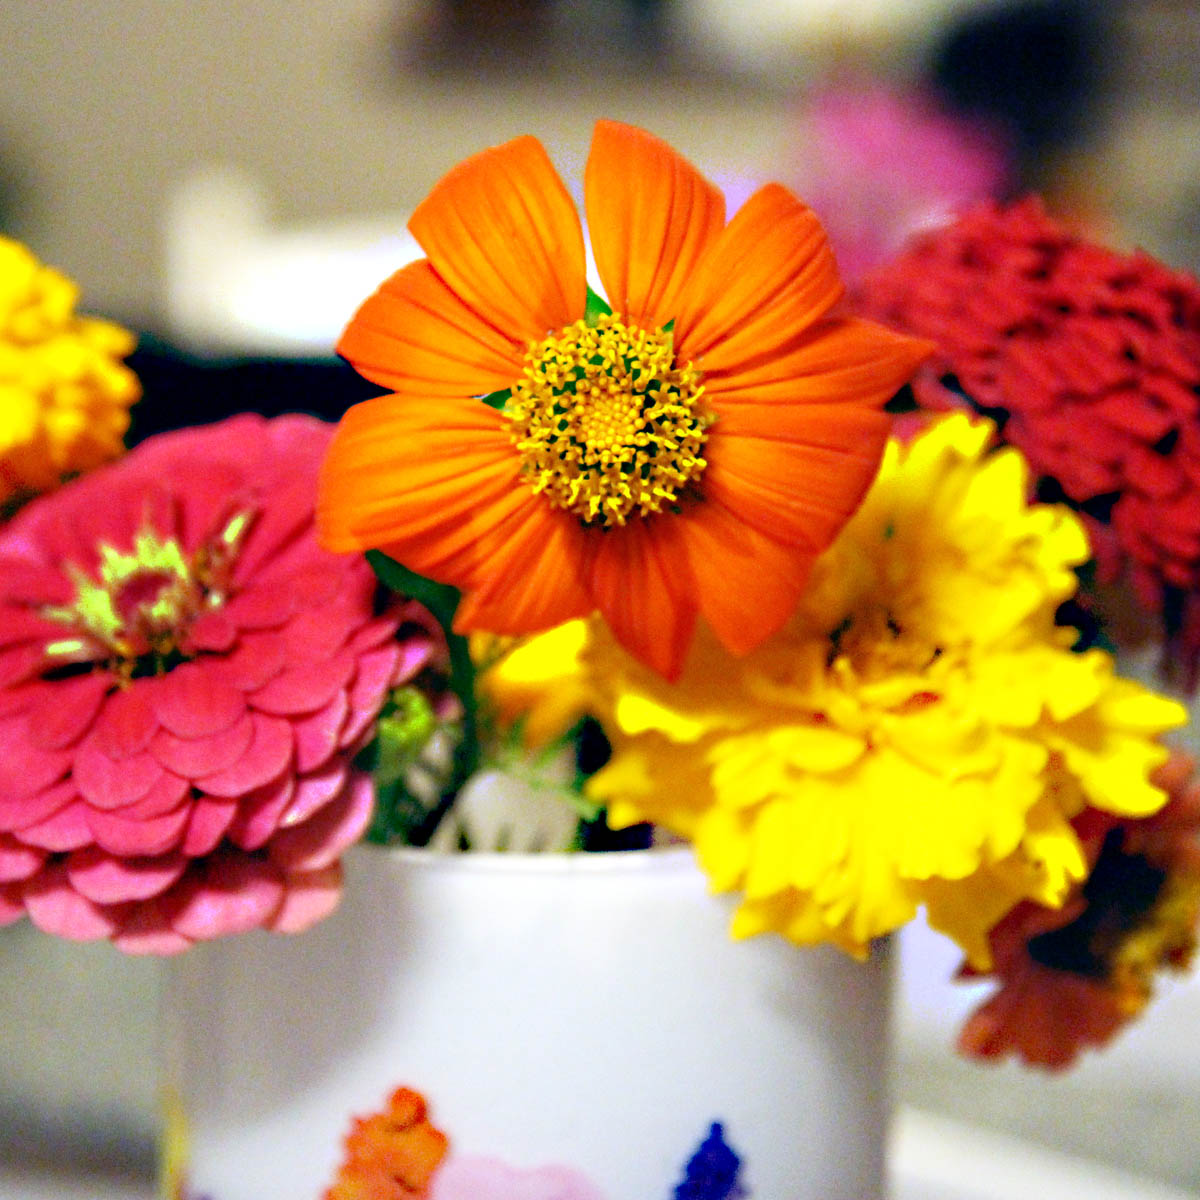 Mexican Sunflower Bouquet with Zinnias